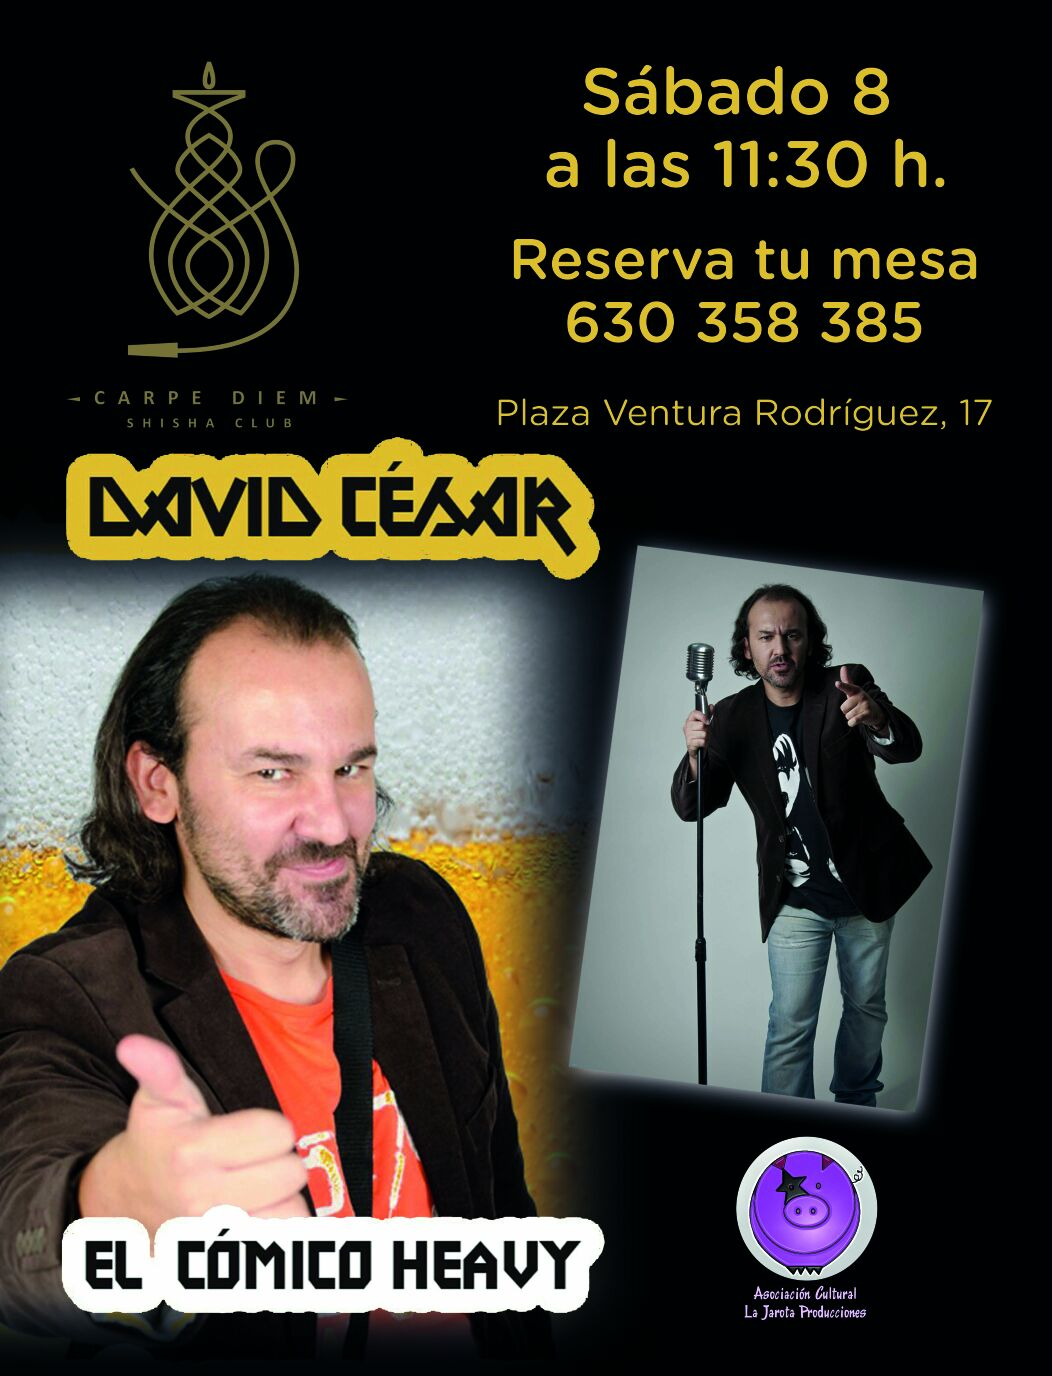 David César en el Carpe Diem Sisha Club